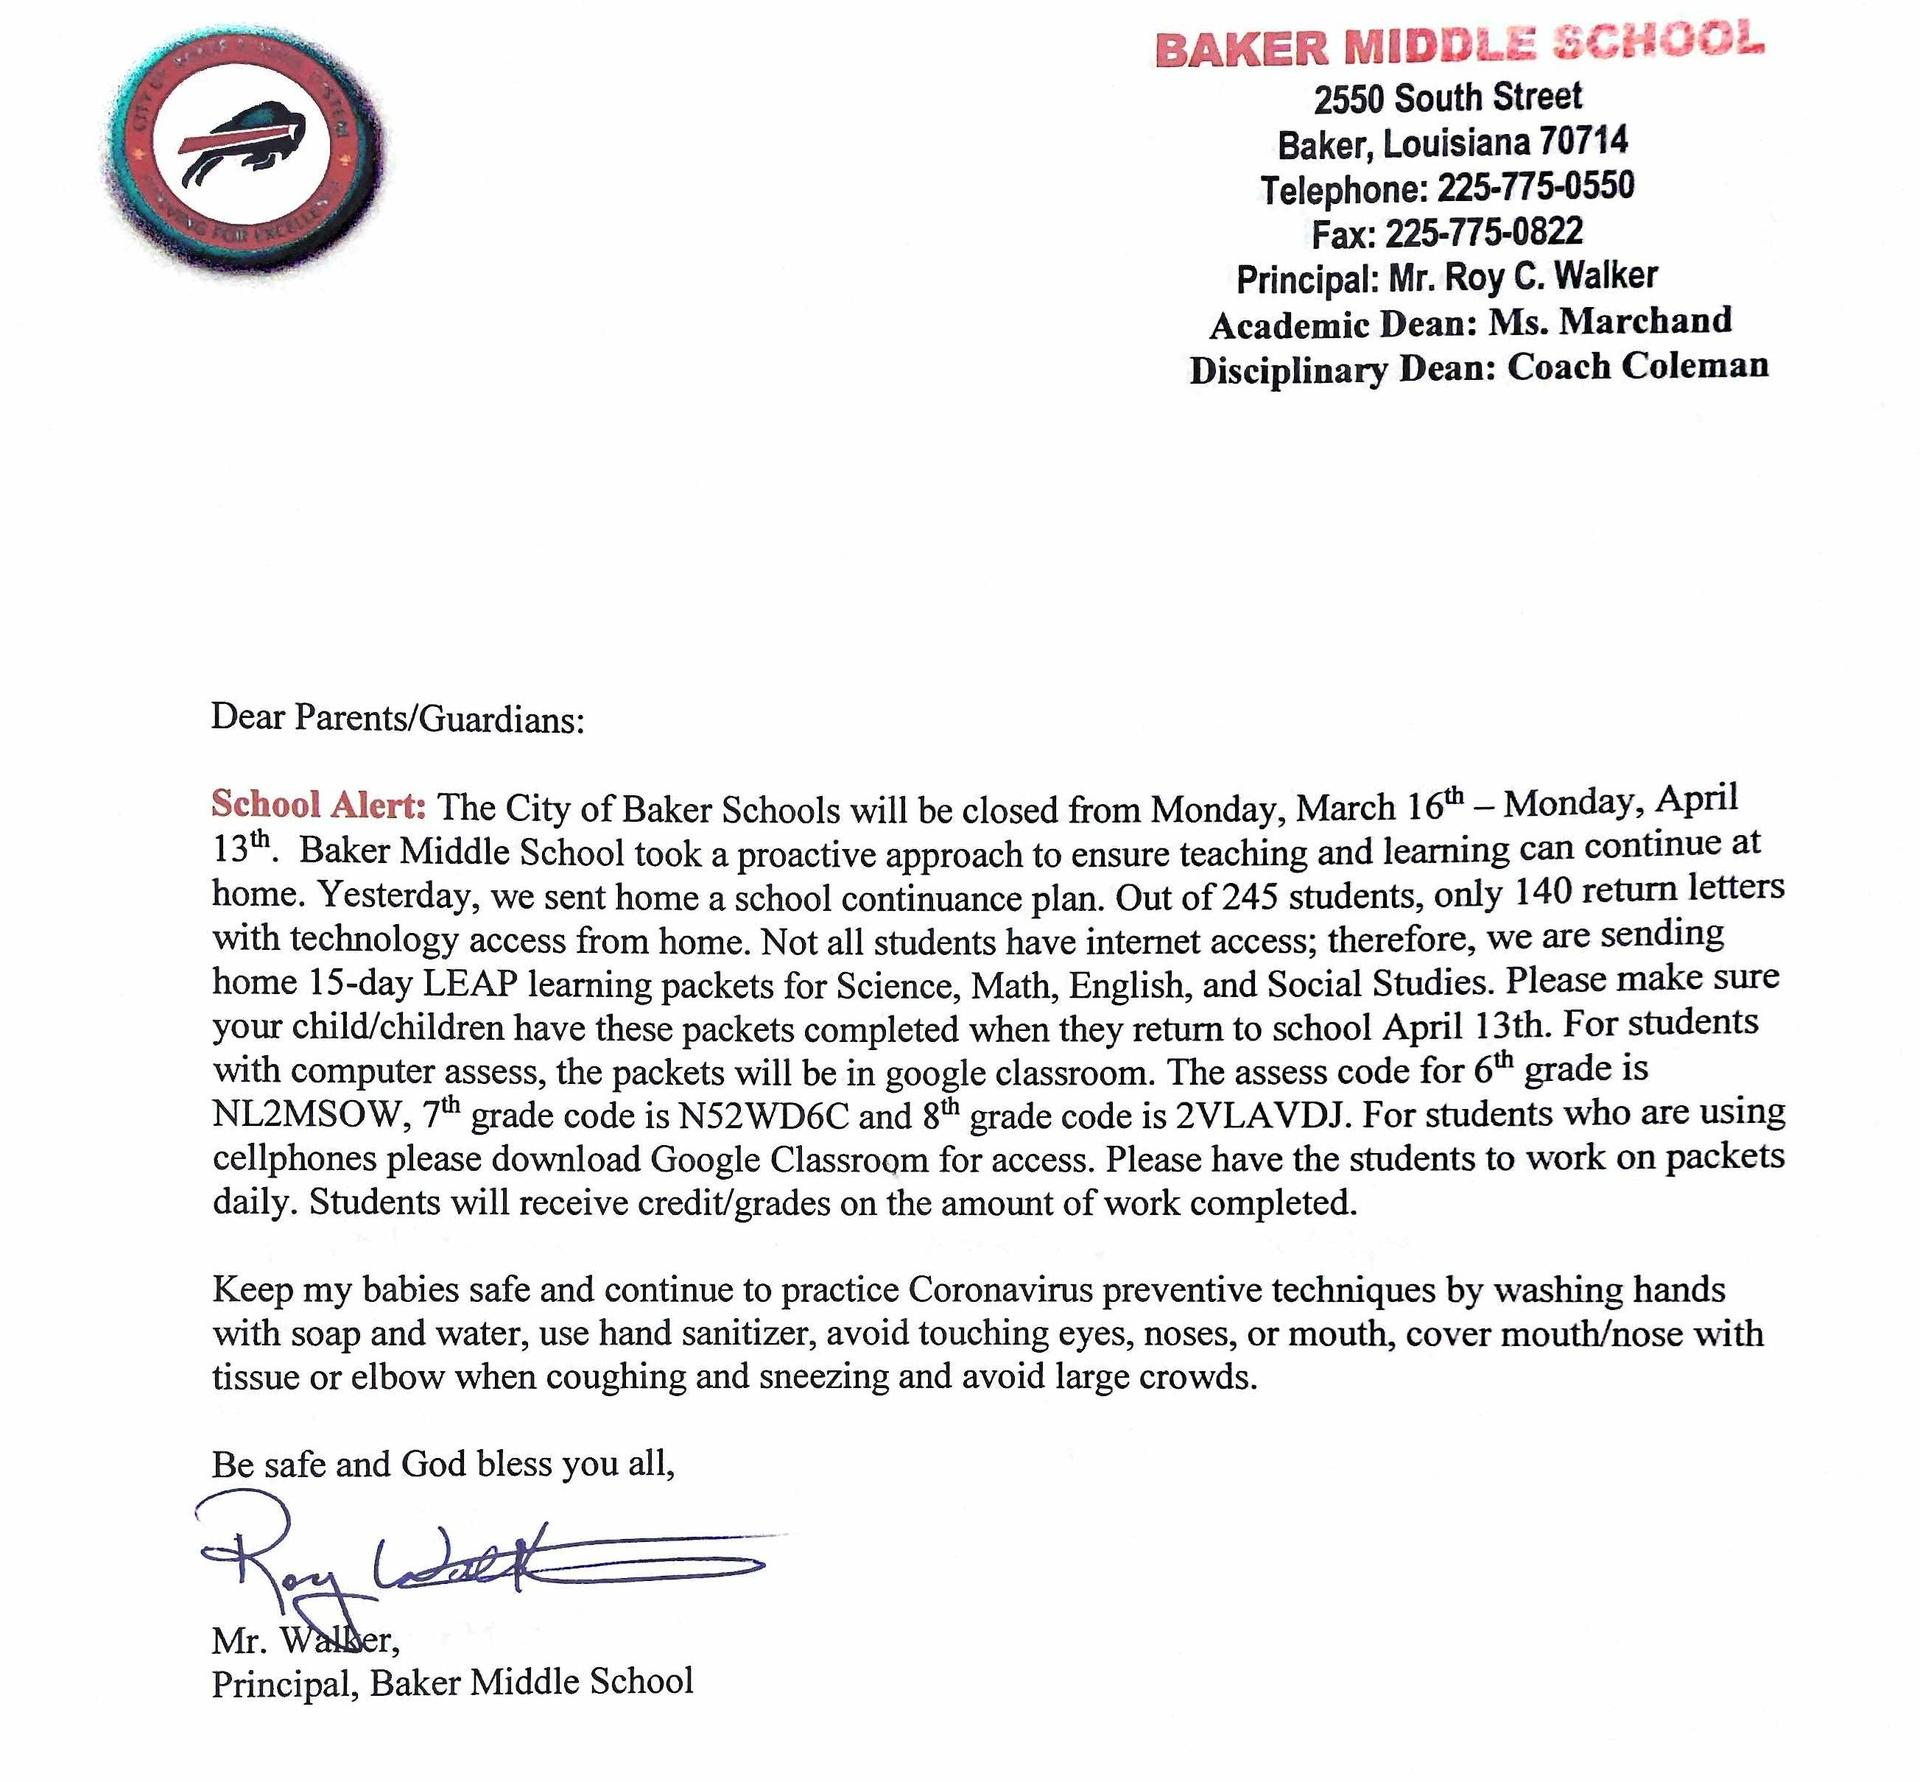 letter from principal about the closing of schools because of the virus